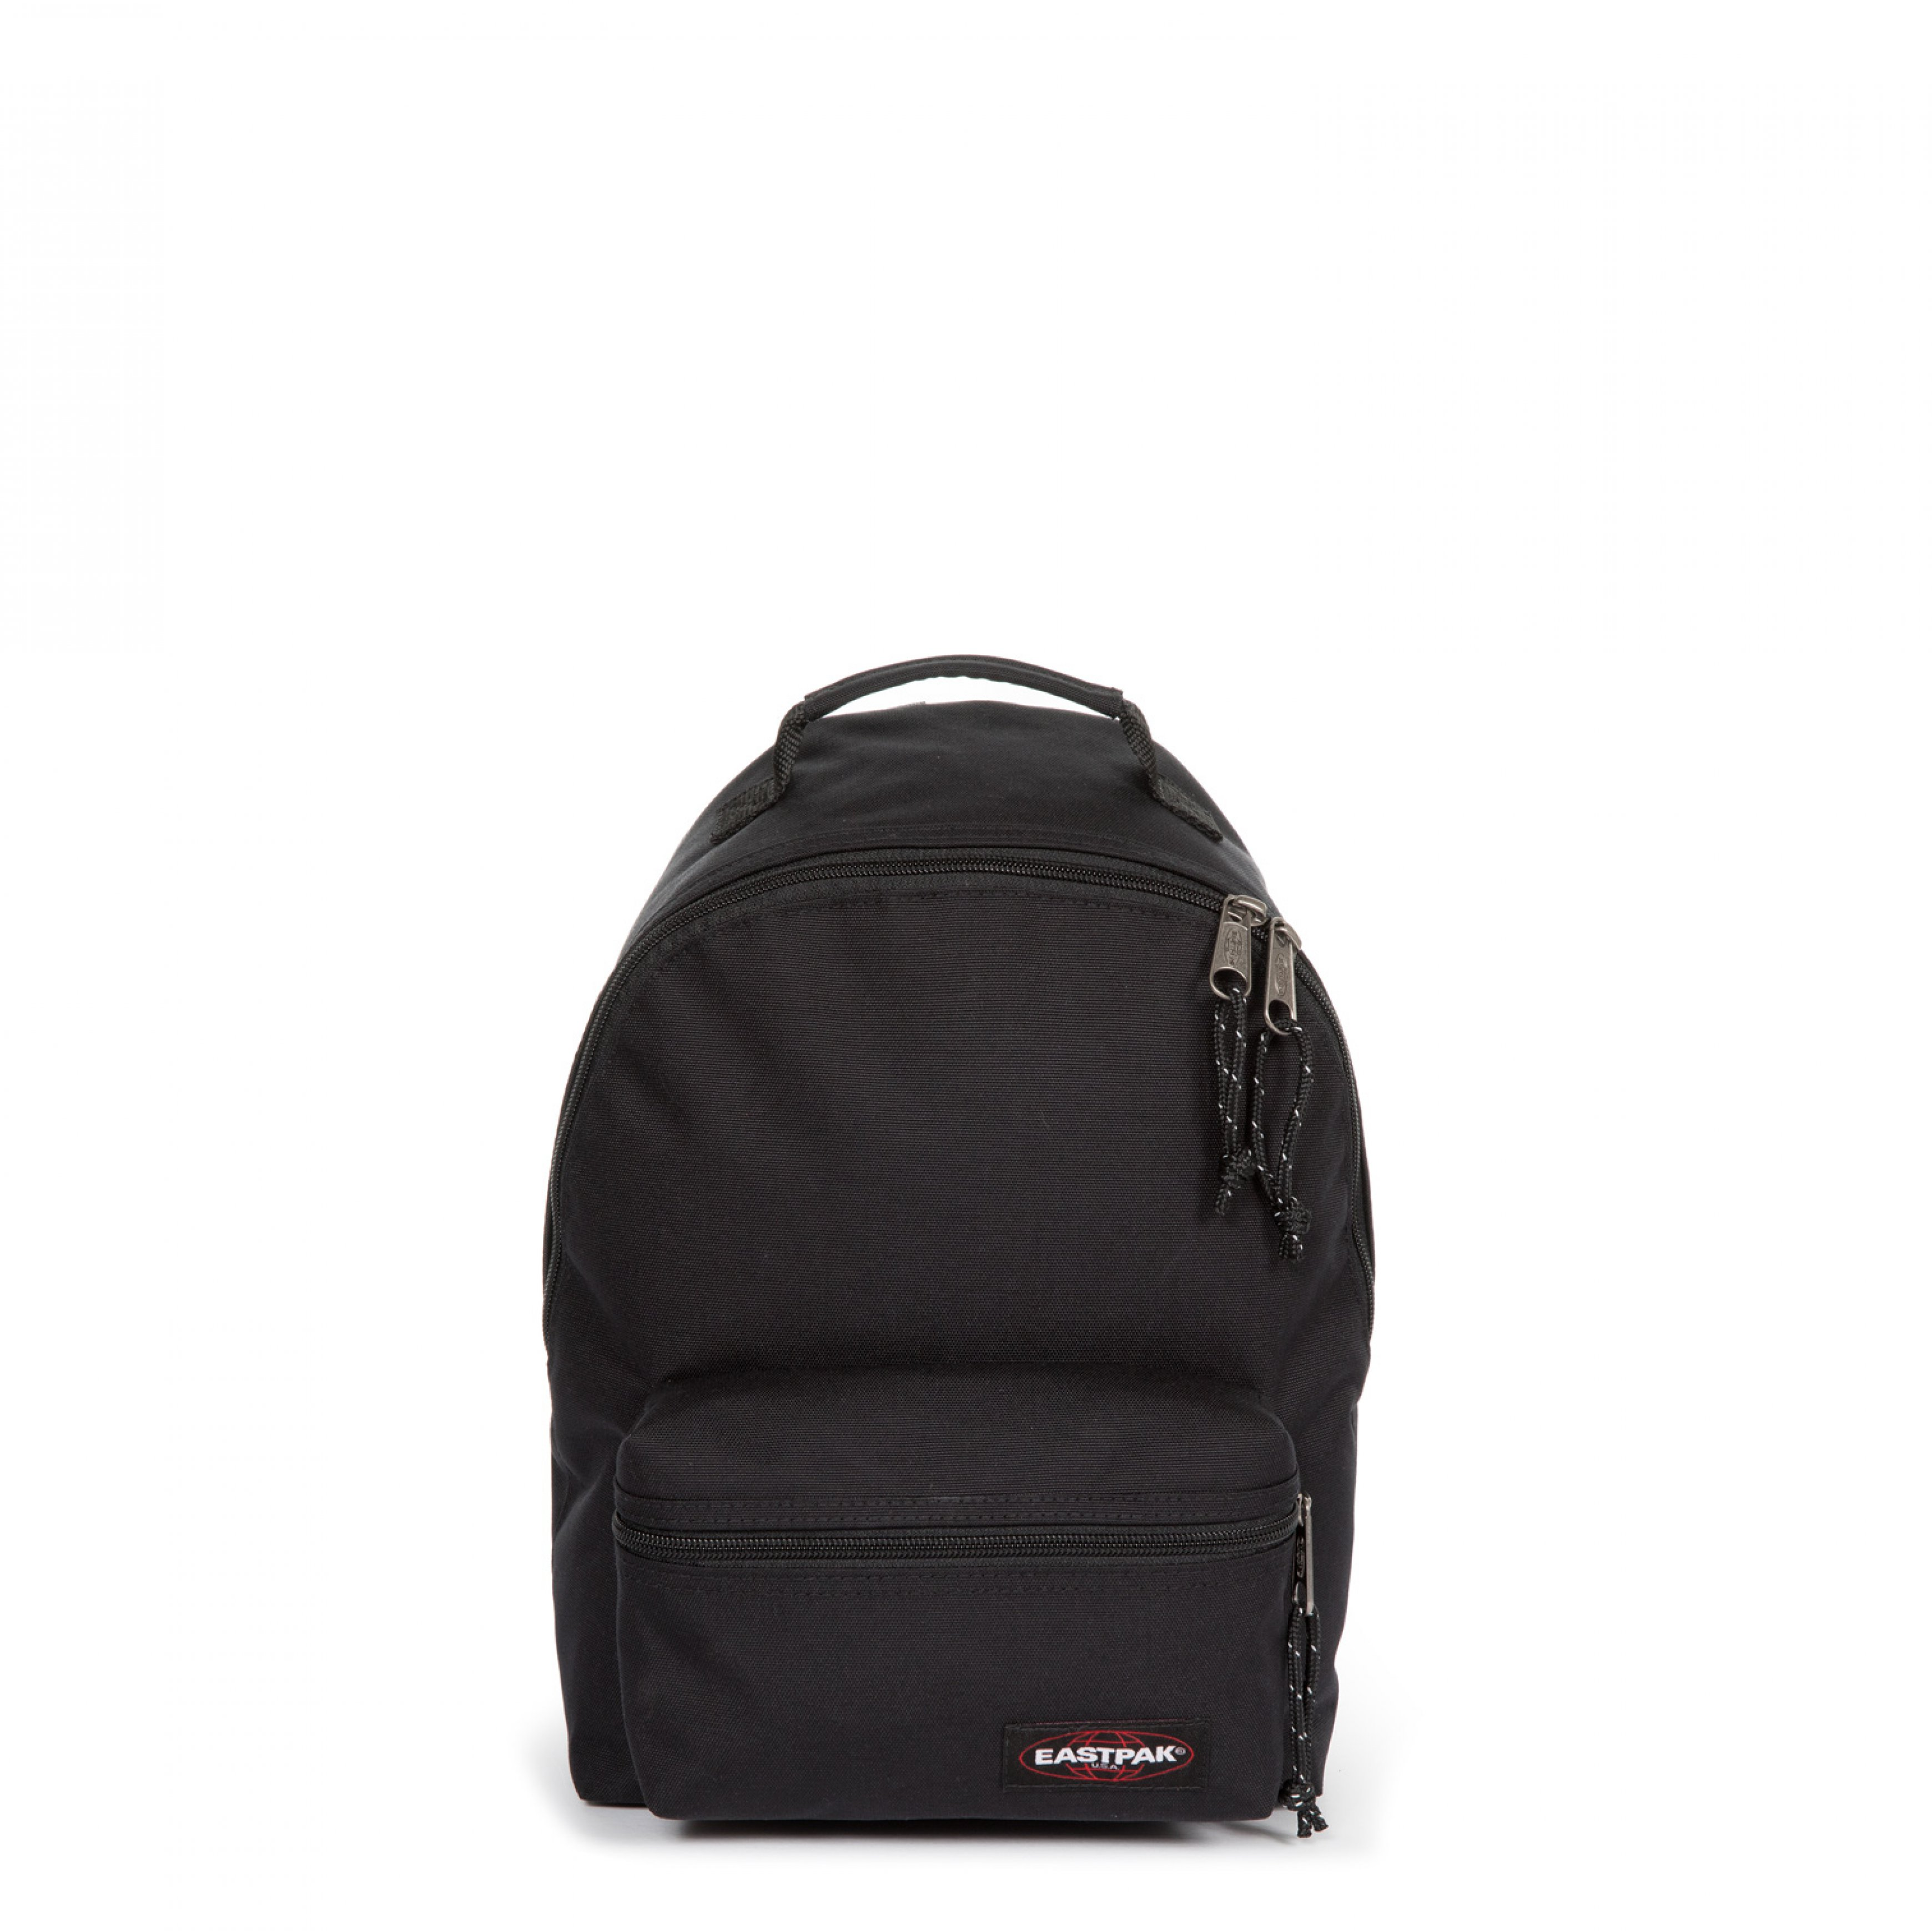 [EASTPAK] AUTHENTIC 백팩 올빗 W EJCBA04 8